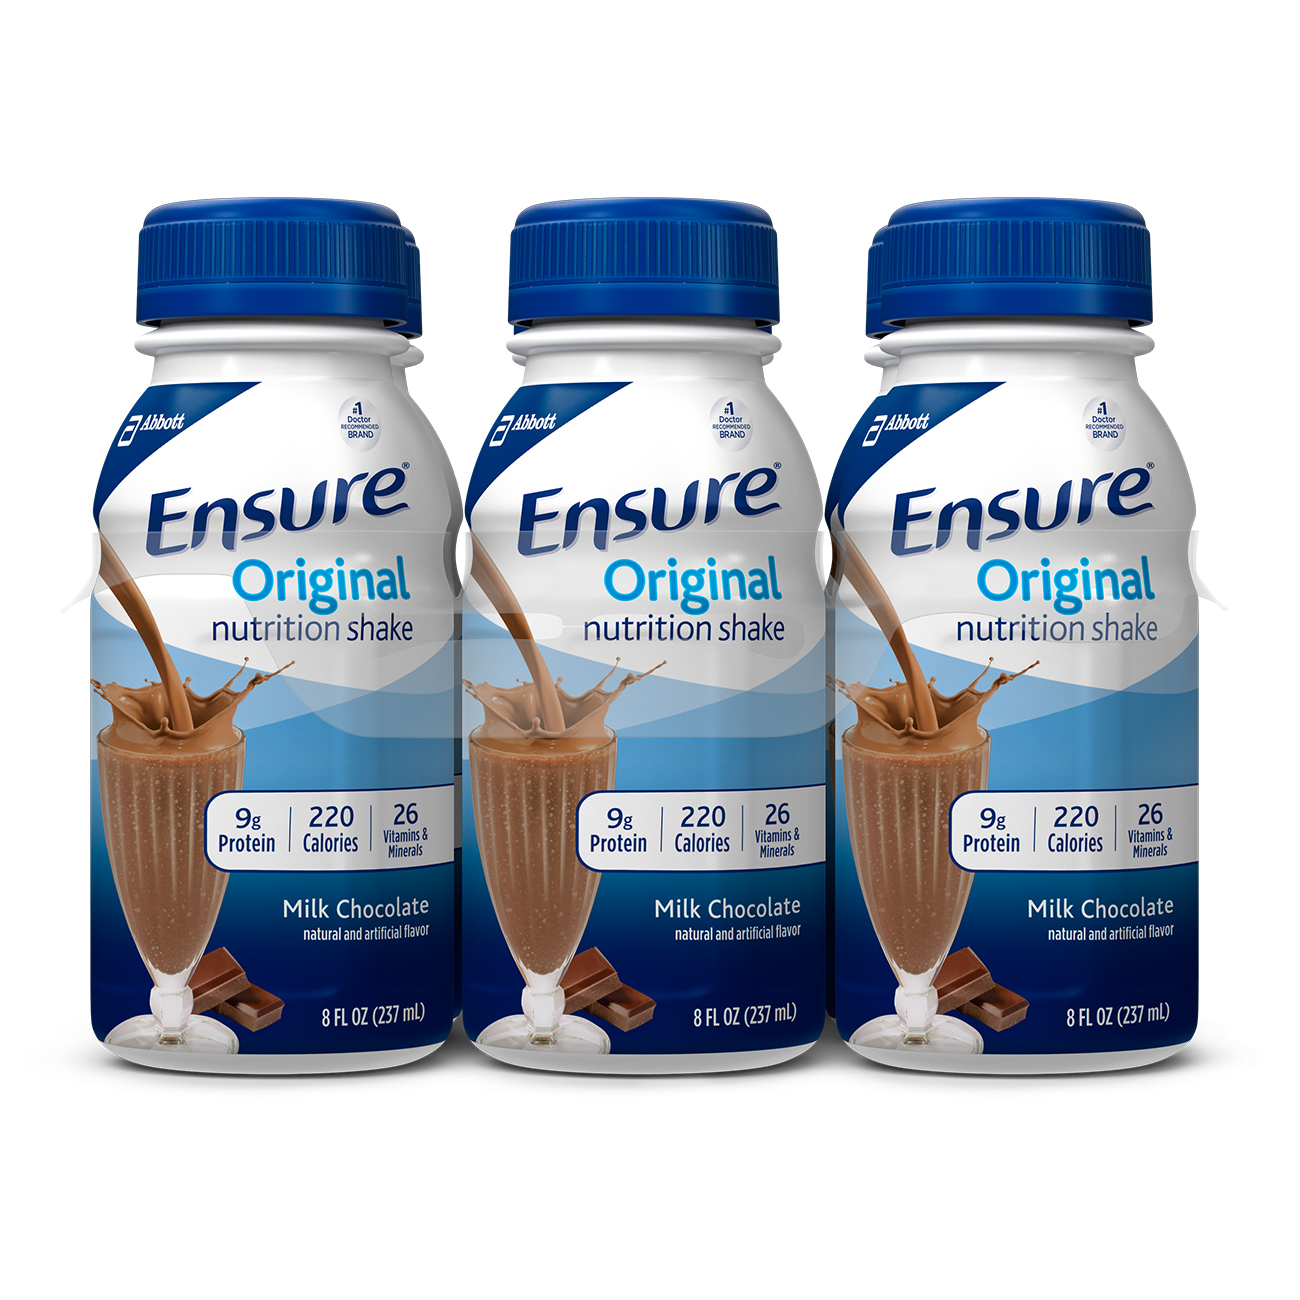 Ensure Original Nutrition Shake With 9 Grams Of Protein Meal Replacement Shakes Dark Chocolate 8 Fl Oz 6 Count